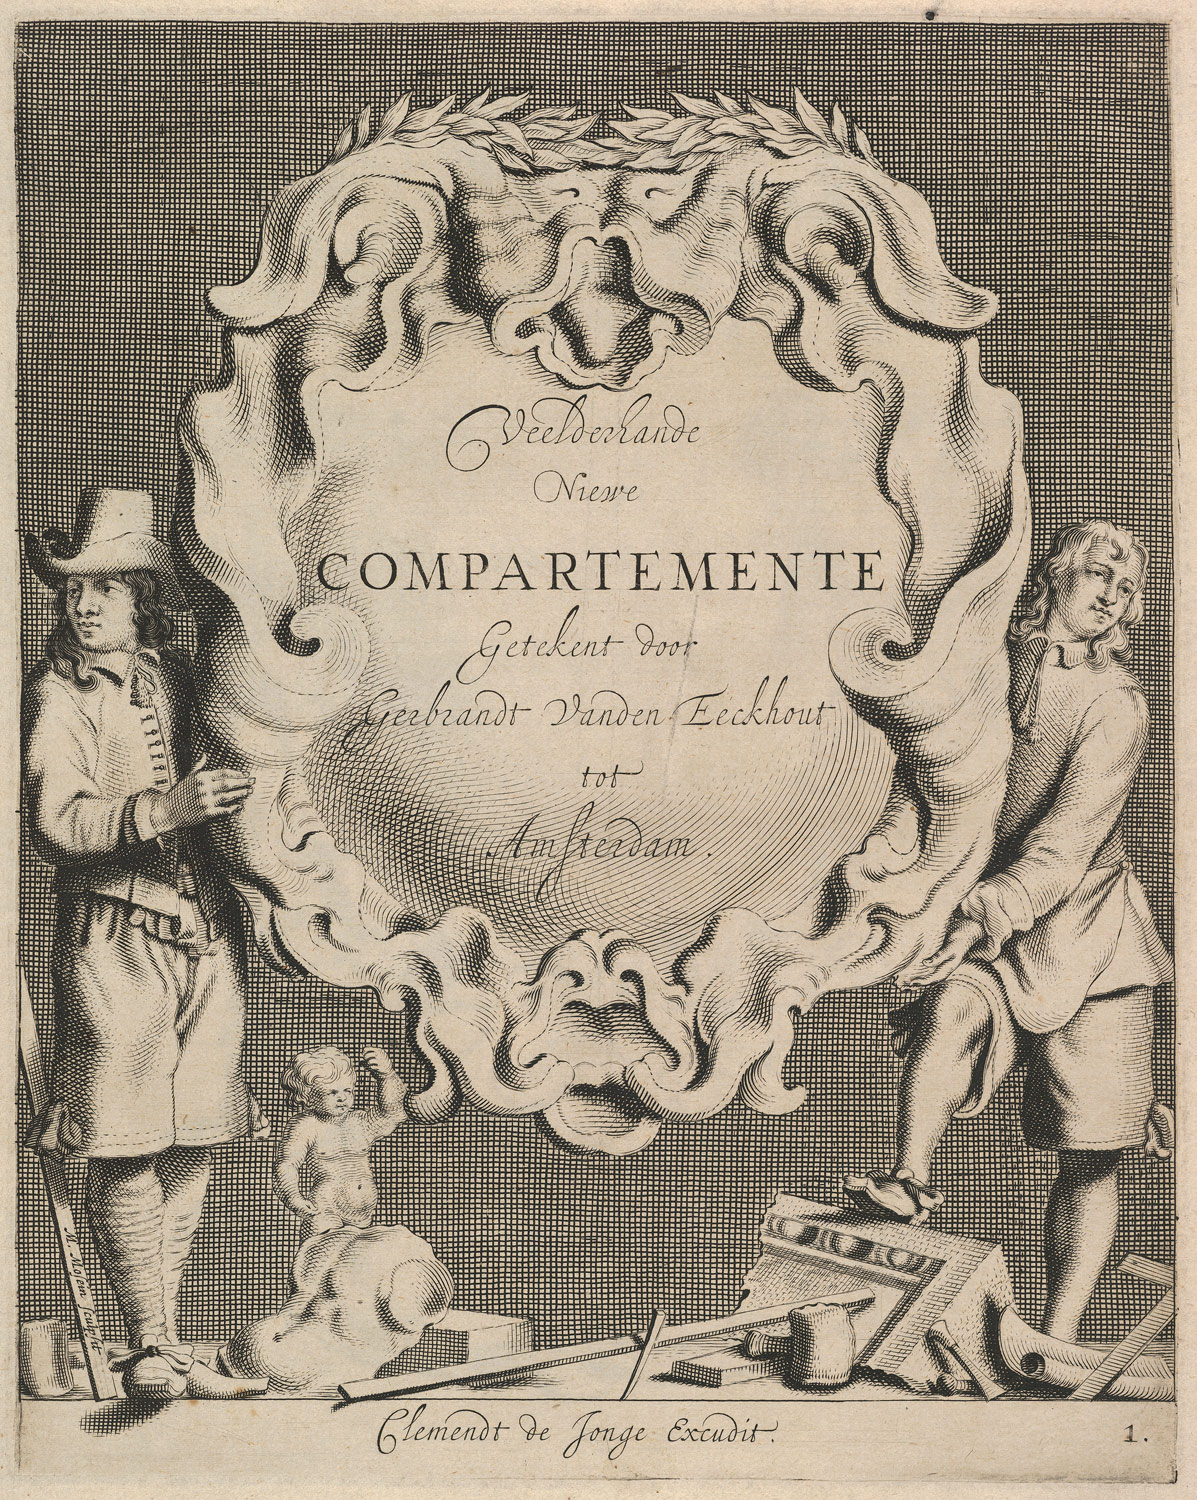 Veelderhande Niewe Compartimente (Titlepage in Dutch)